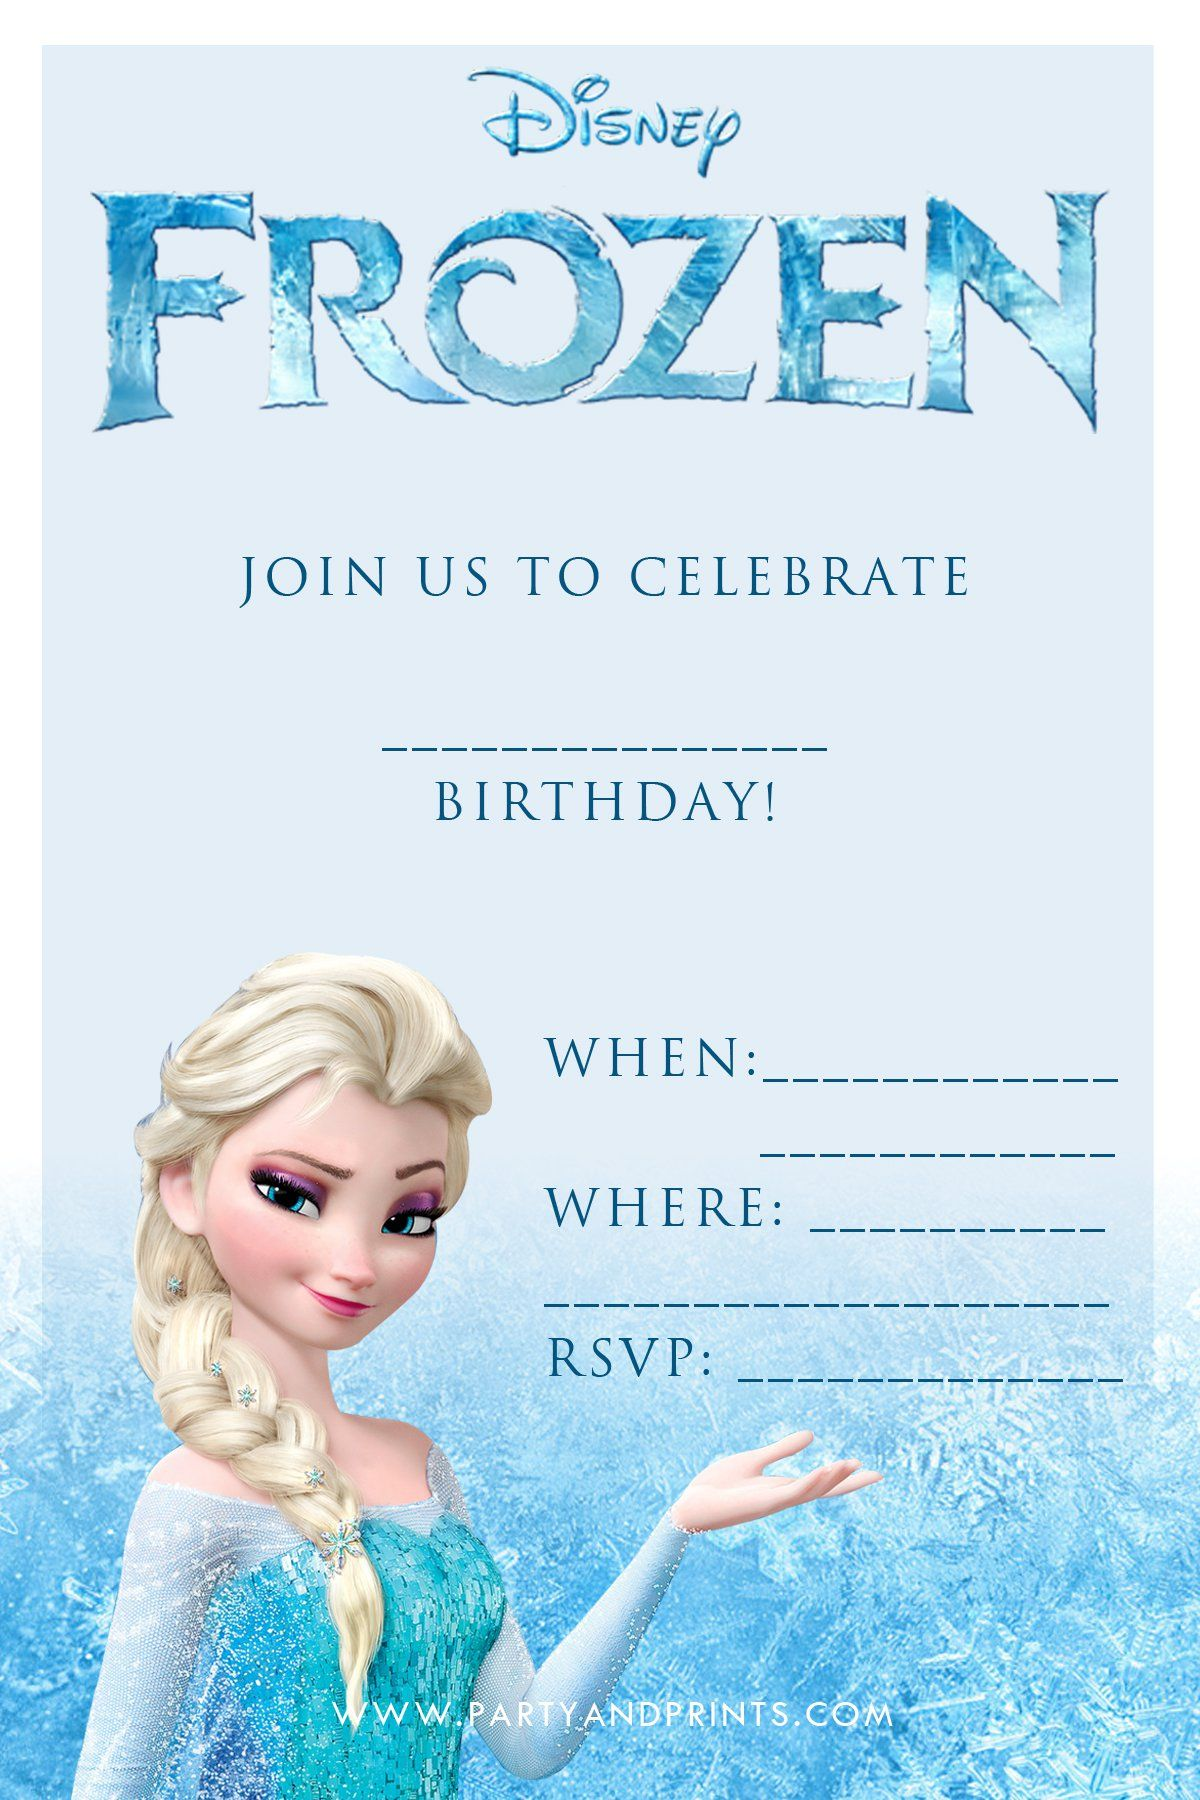 Print Invitation Cards Online In 2020 Birthday Party